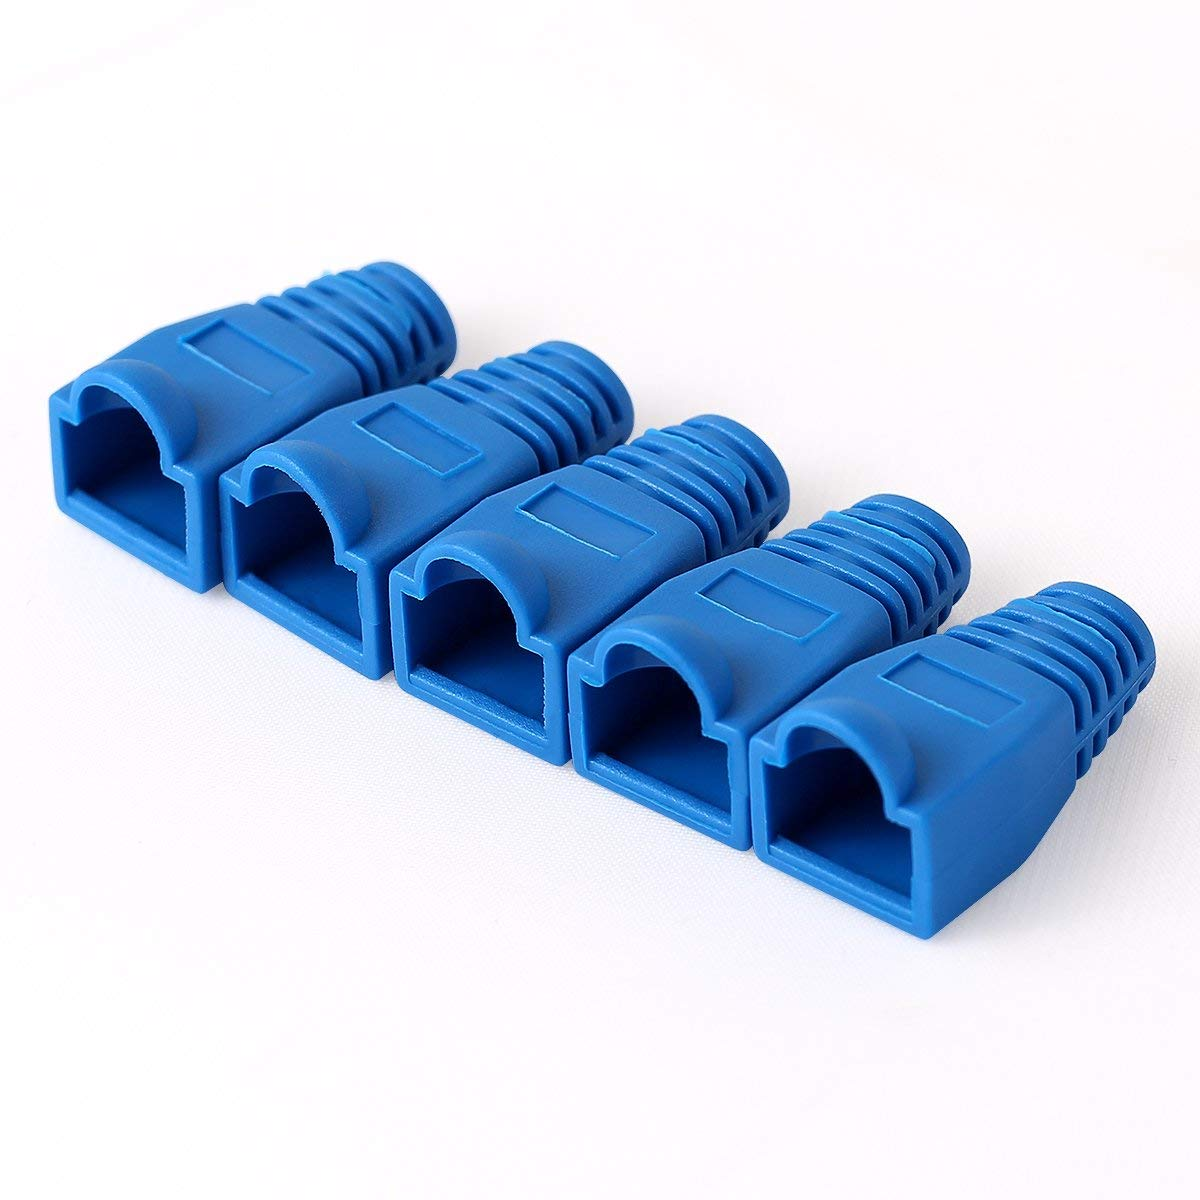 AMPCOM 100 Pcs RJ45 Connector Strain Relief Boots Cover for CAT5/5E/6/6A/7 Ethernet Cable-Low-Smoke Zero Halogen (Blue)